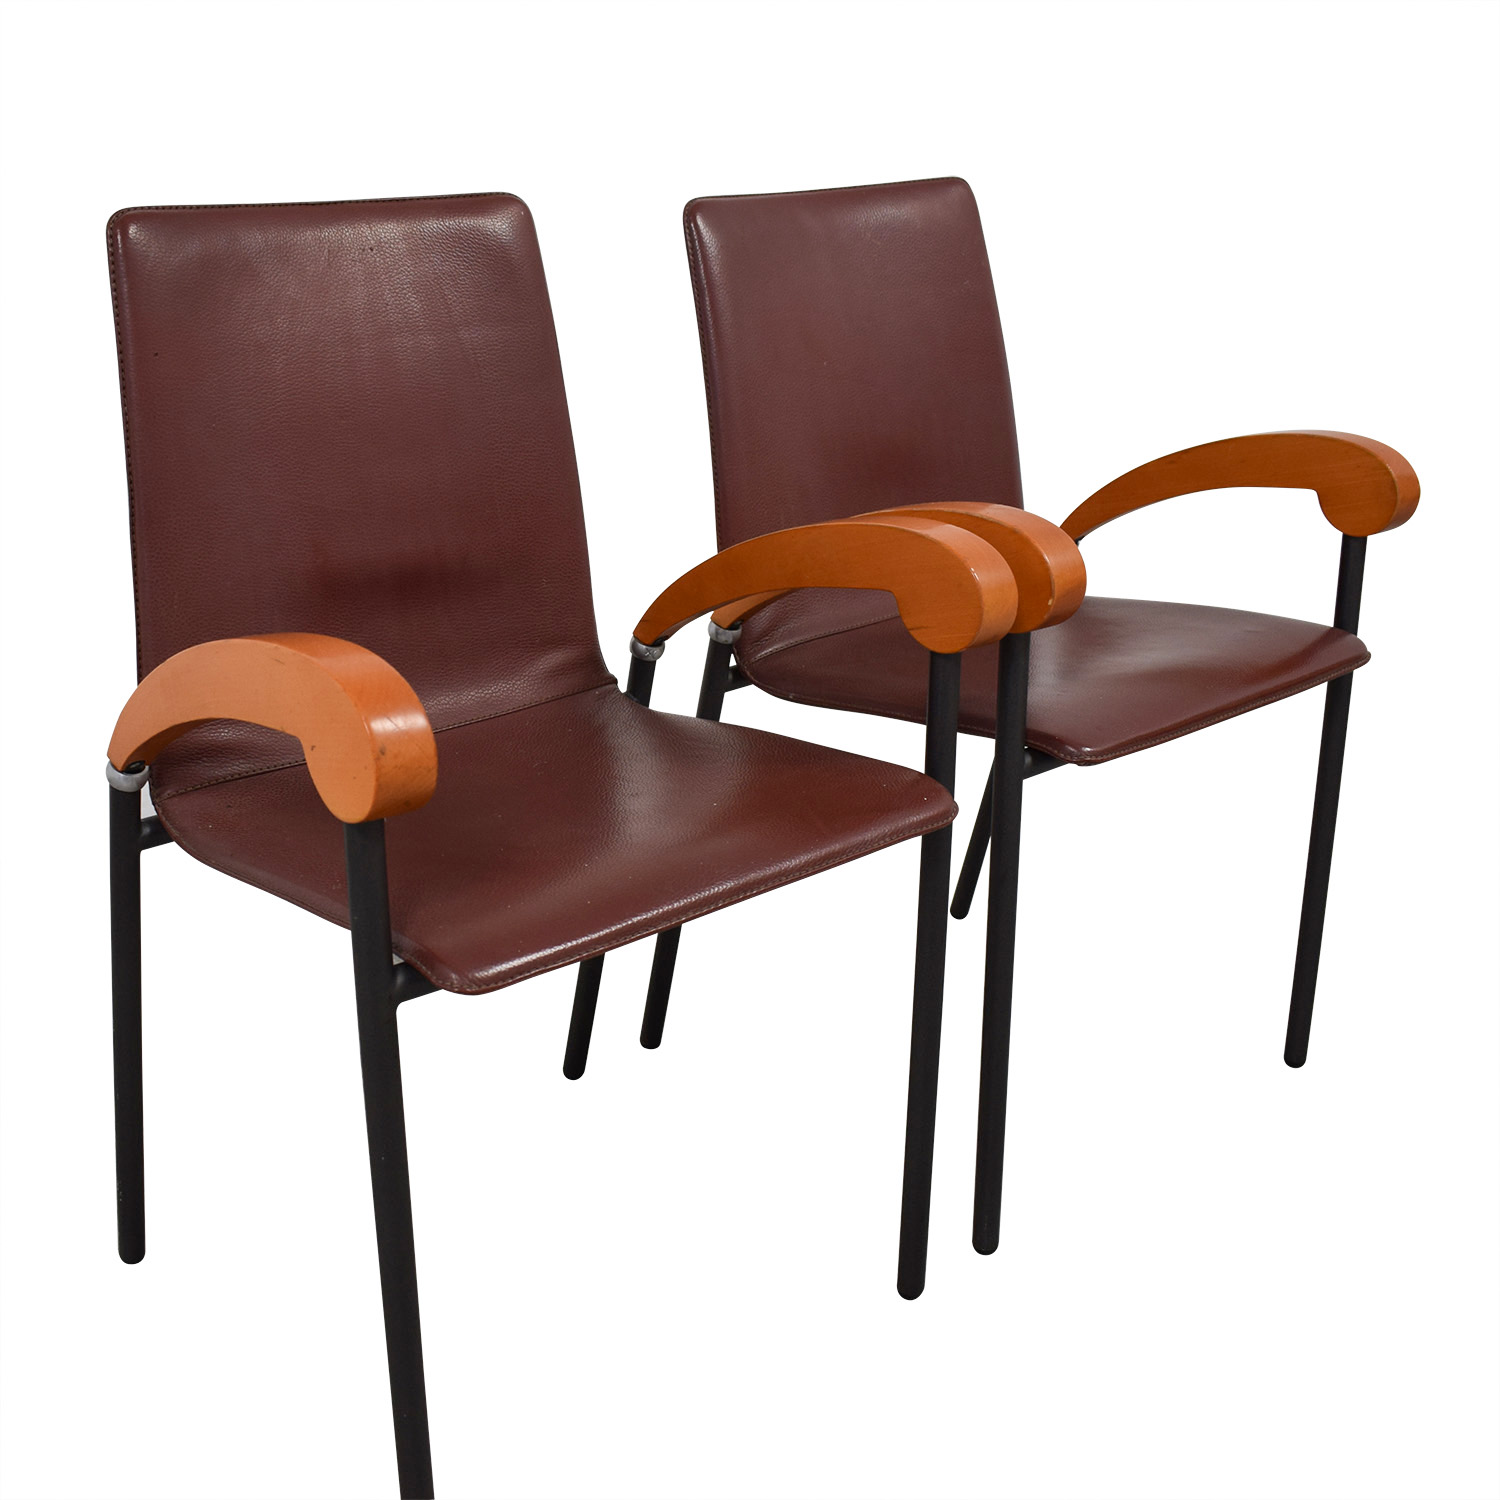 ... Italian Brown Leather And Cherry Wood Dining Chairs Nj ...